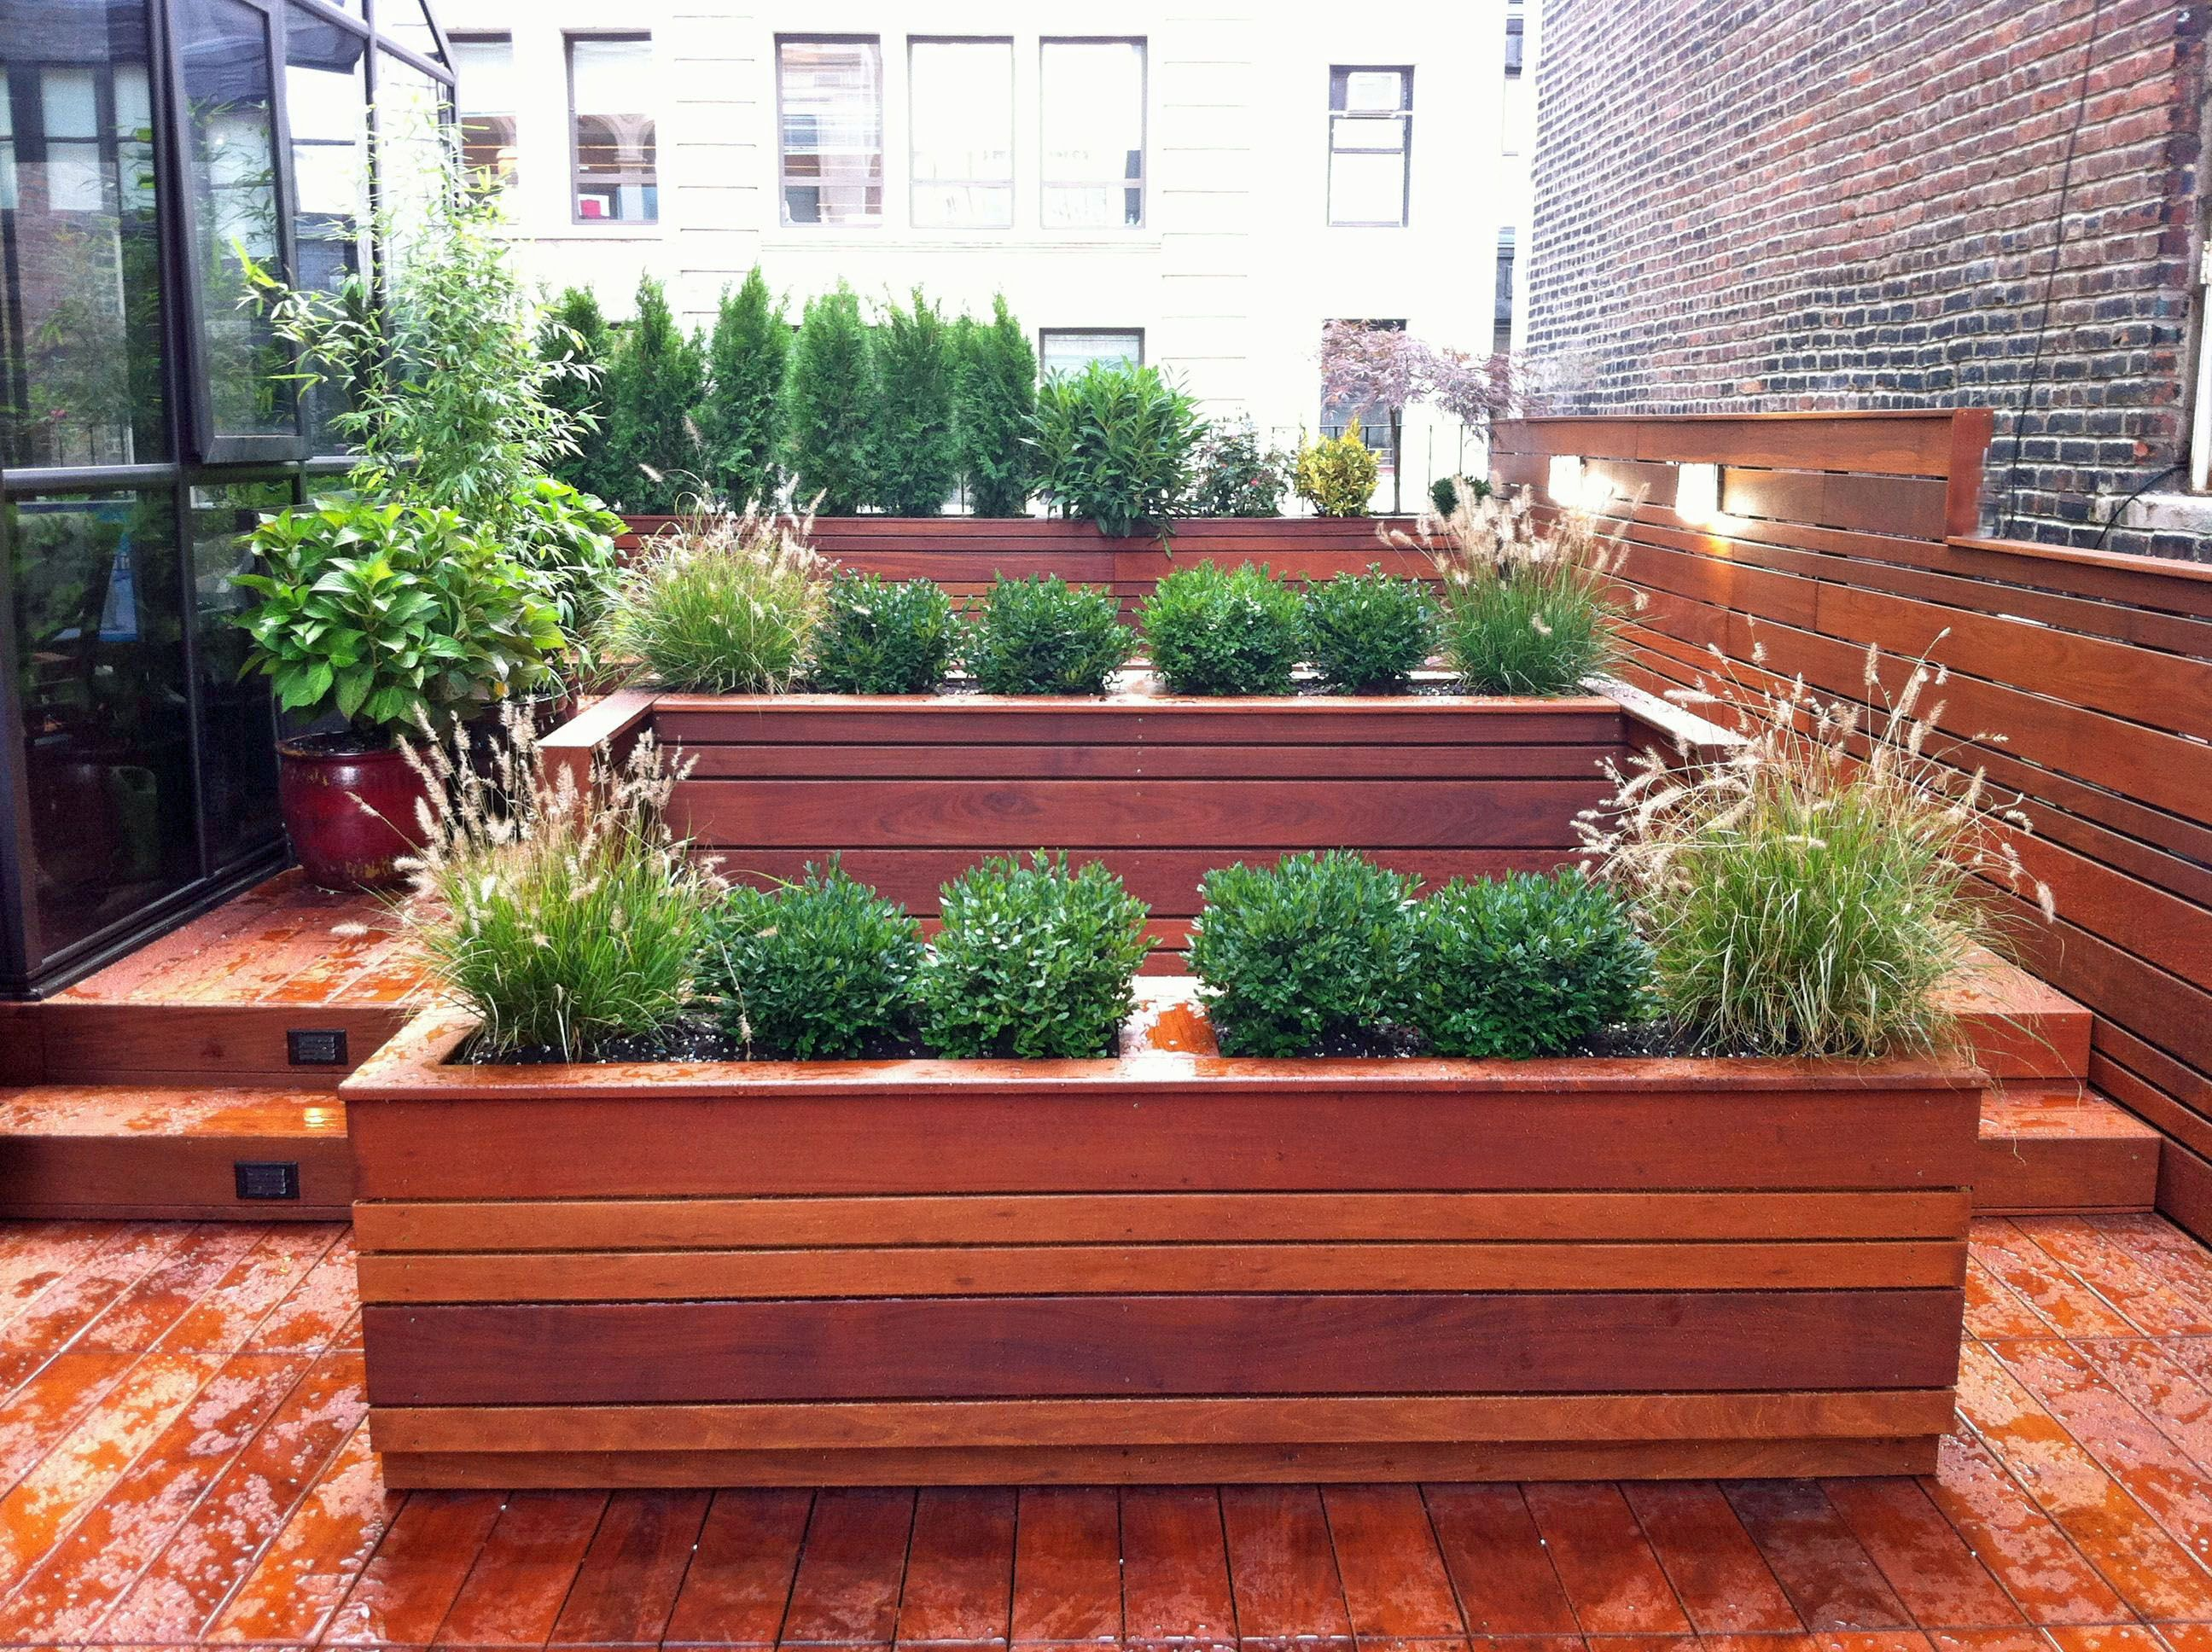 This NYC Custom Roof Garden Design Features Contemporary Looking